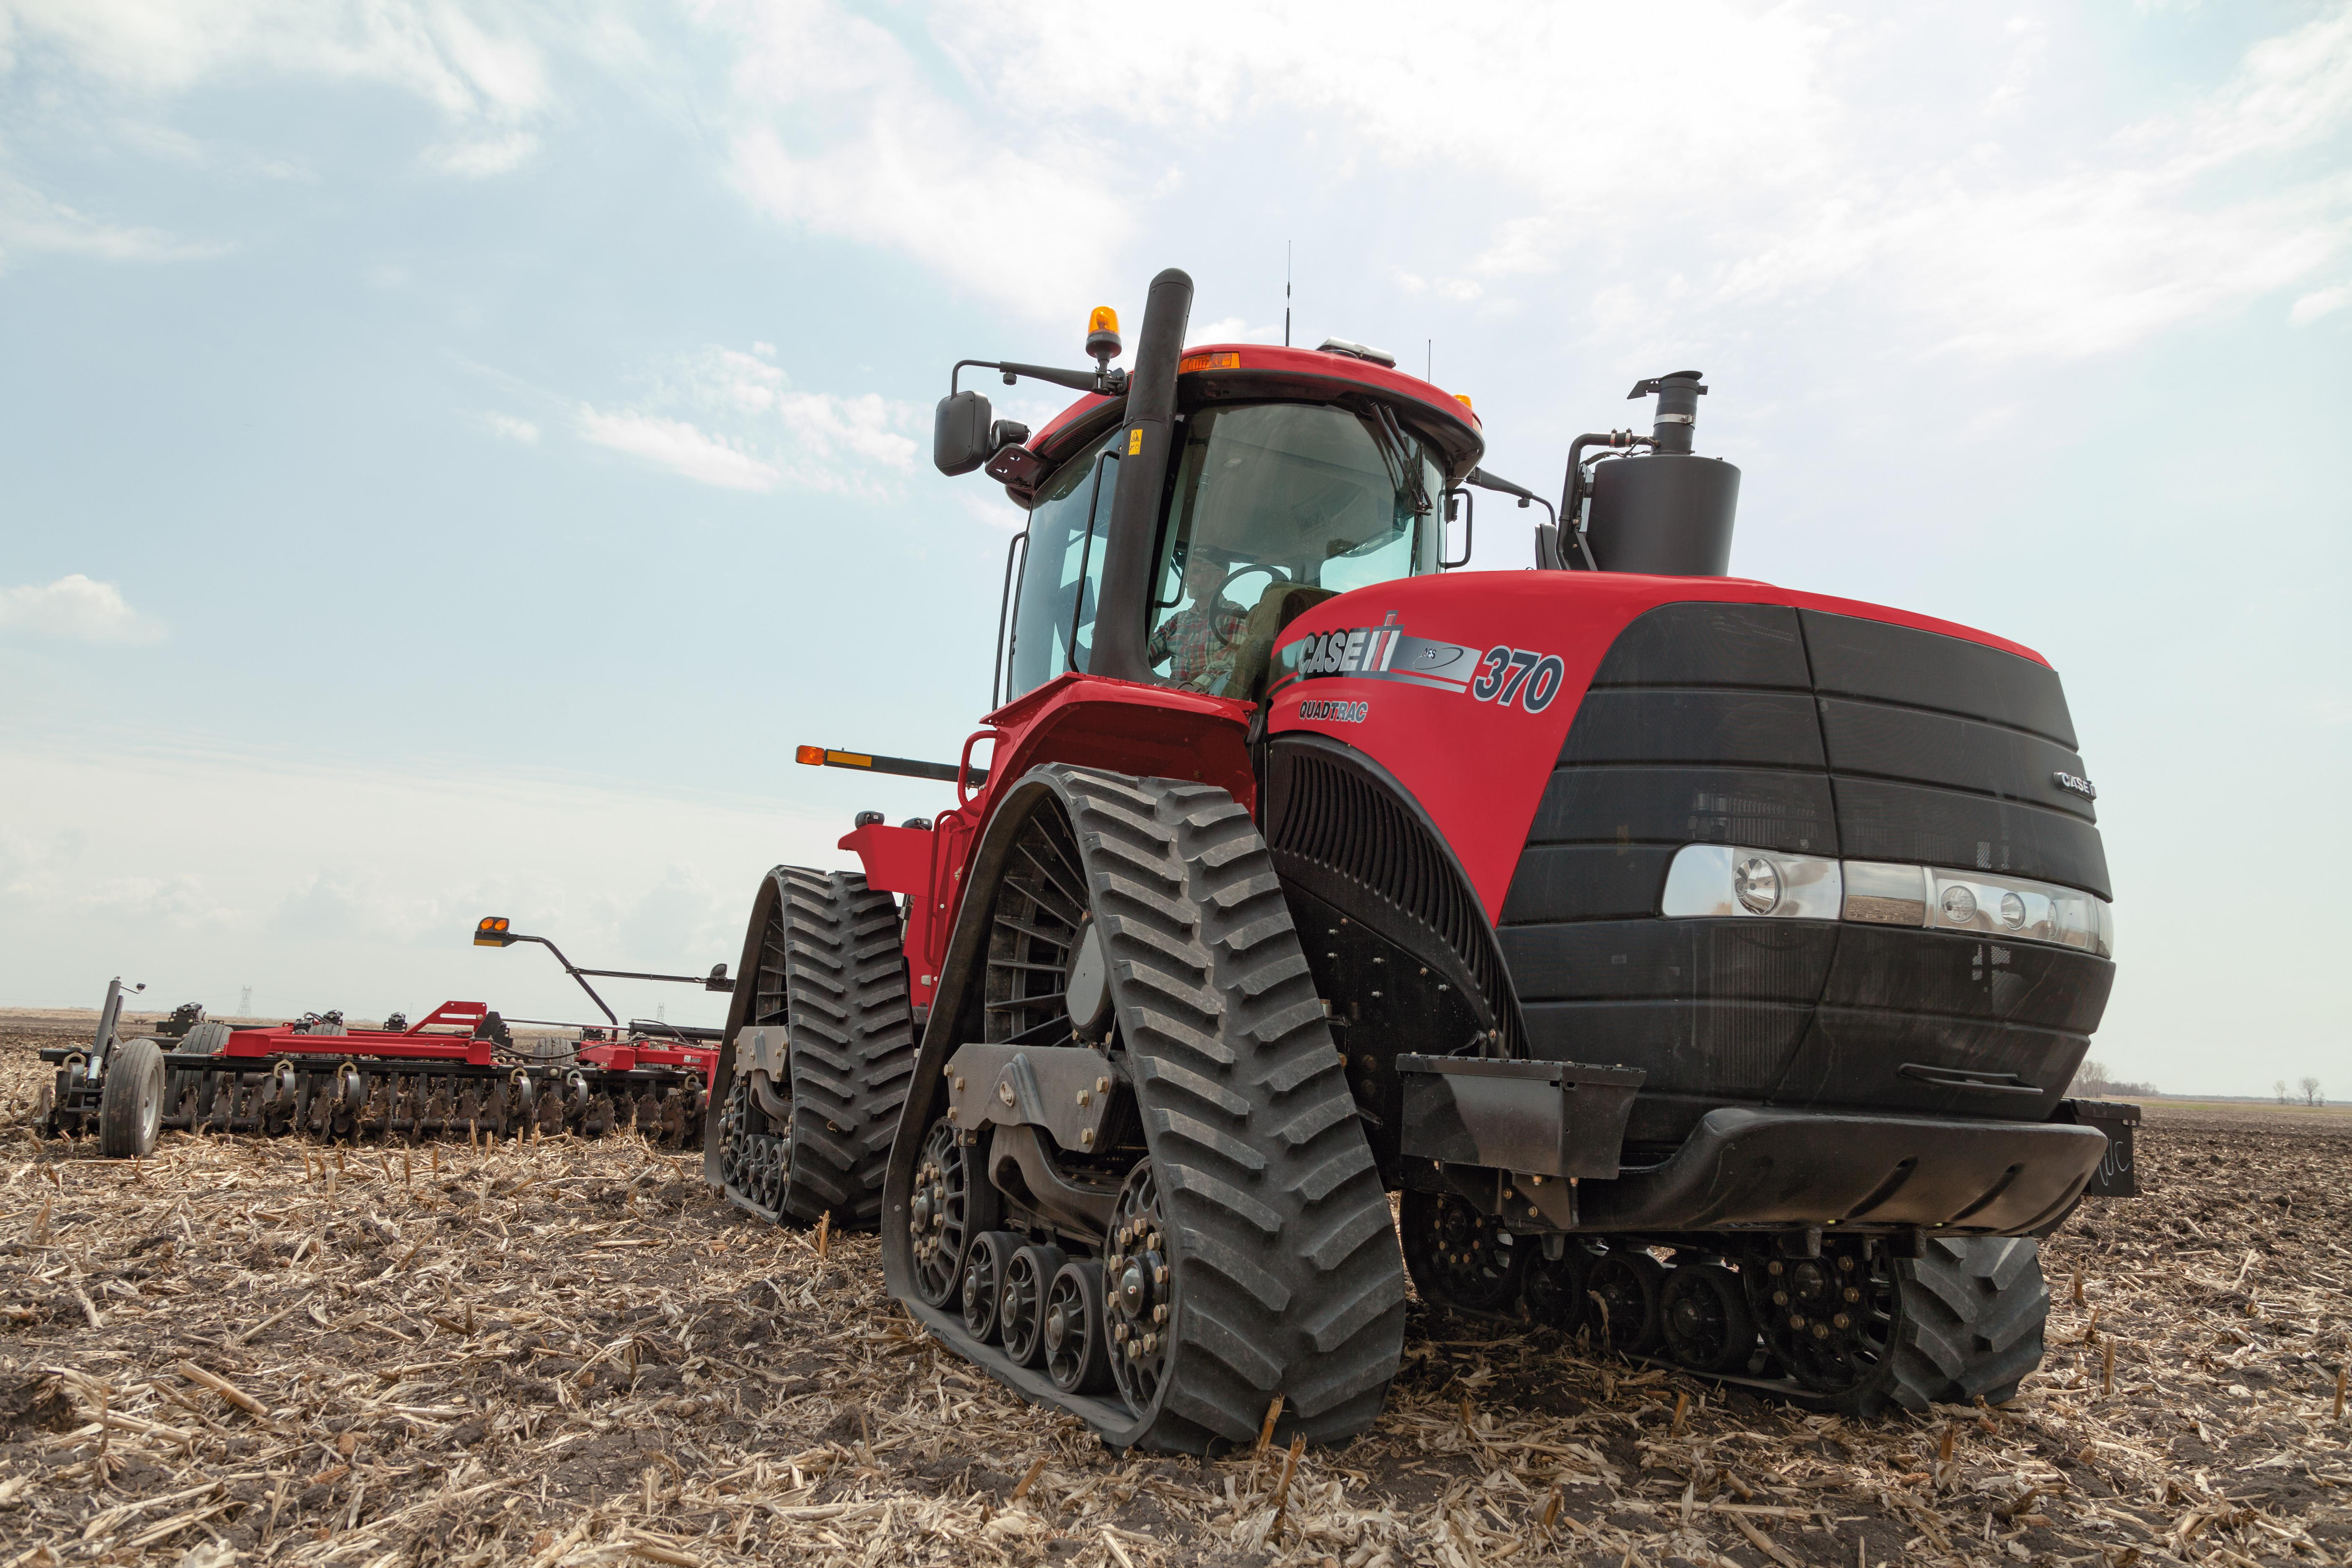 Steiger_370_Rowtrac_B 2338_05 03 13_mr?width=300&height=250 steiger series 4wd row crop farming tractors case ih  at mifinder.co